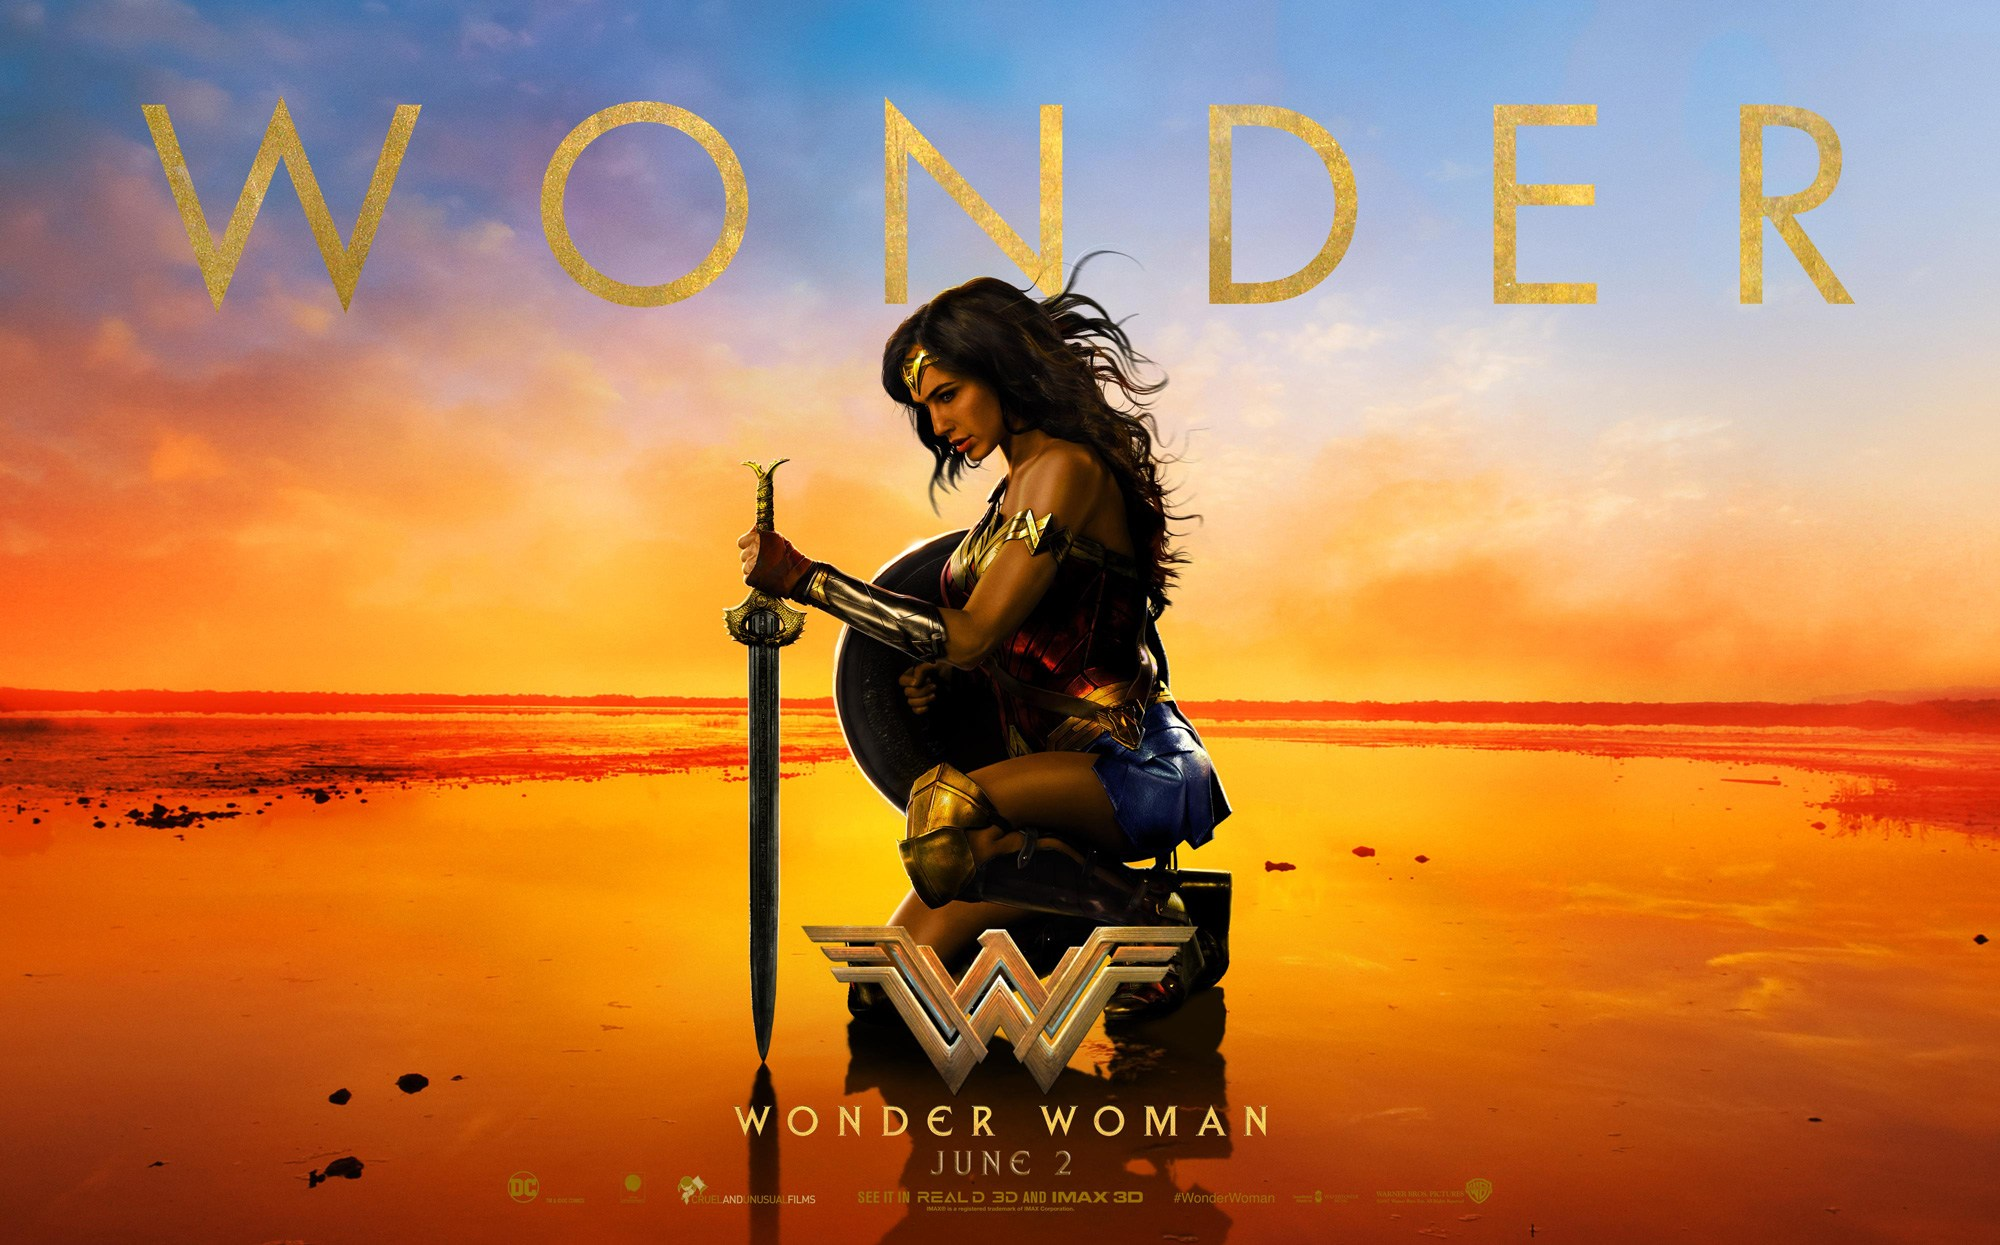 U.S. theaters host women-only screenings of 'Wonder Woman' sparking backlash